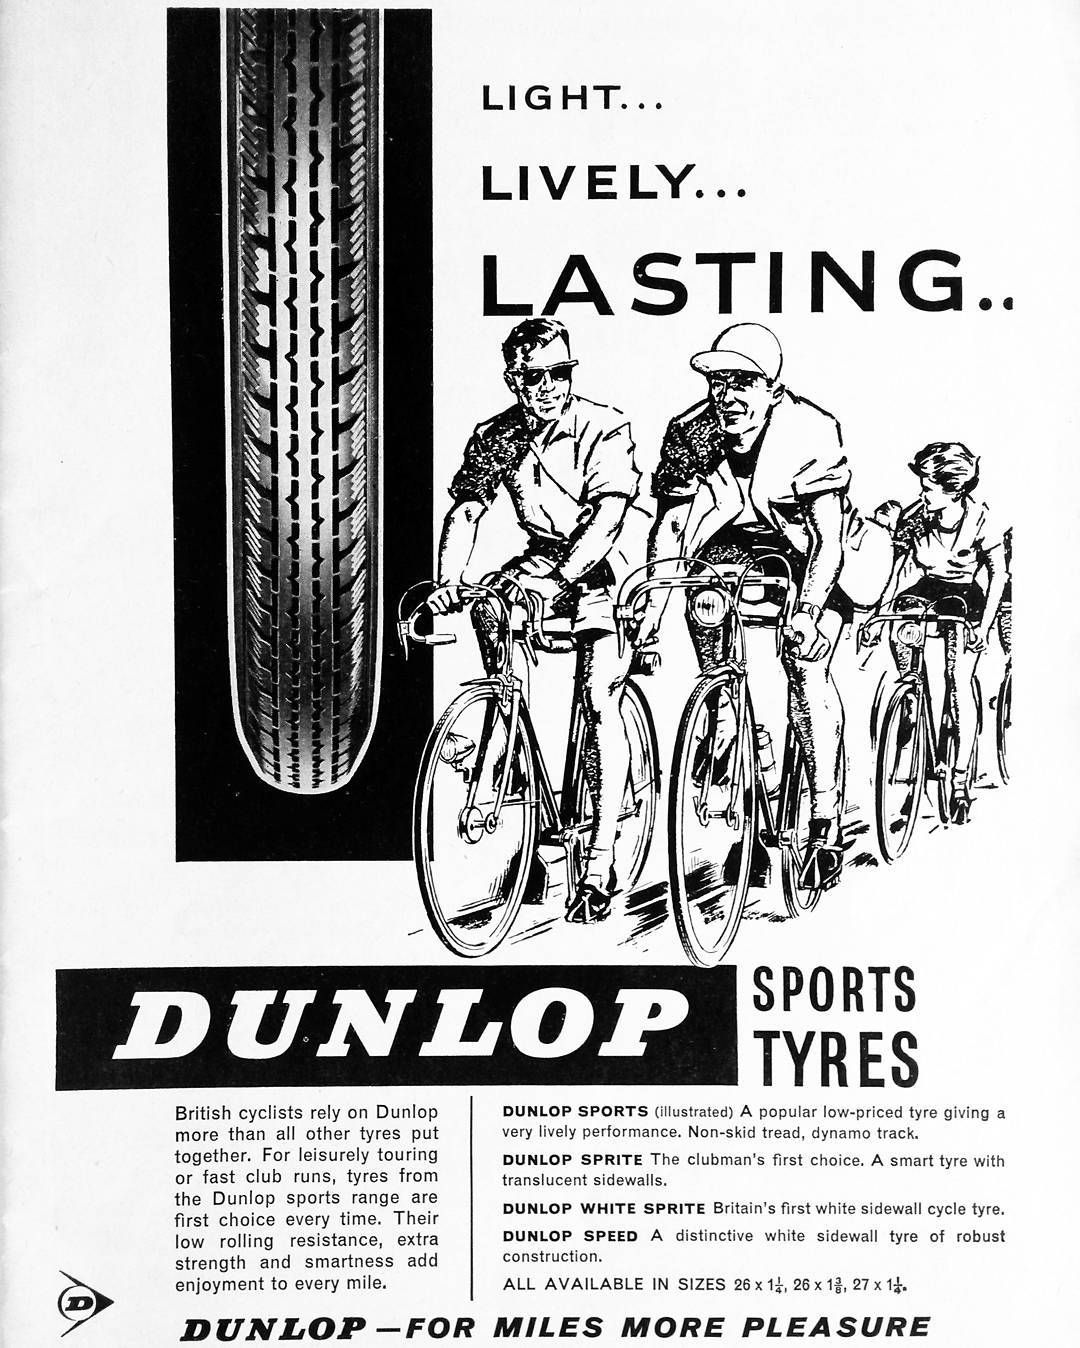 Dunlop Bicycle Tyre Advertisement From 1962 Bicycletyres Dunlop Vintagecycling Vintagebicycle Retrocycling B Dunlop Tyres Bicycle Mechanics Dunlop Sport